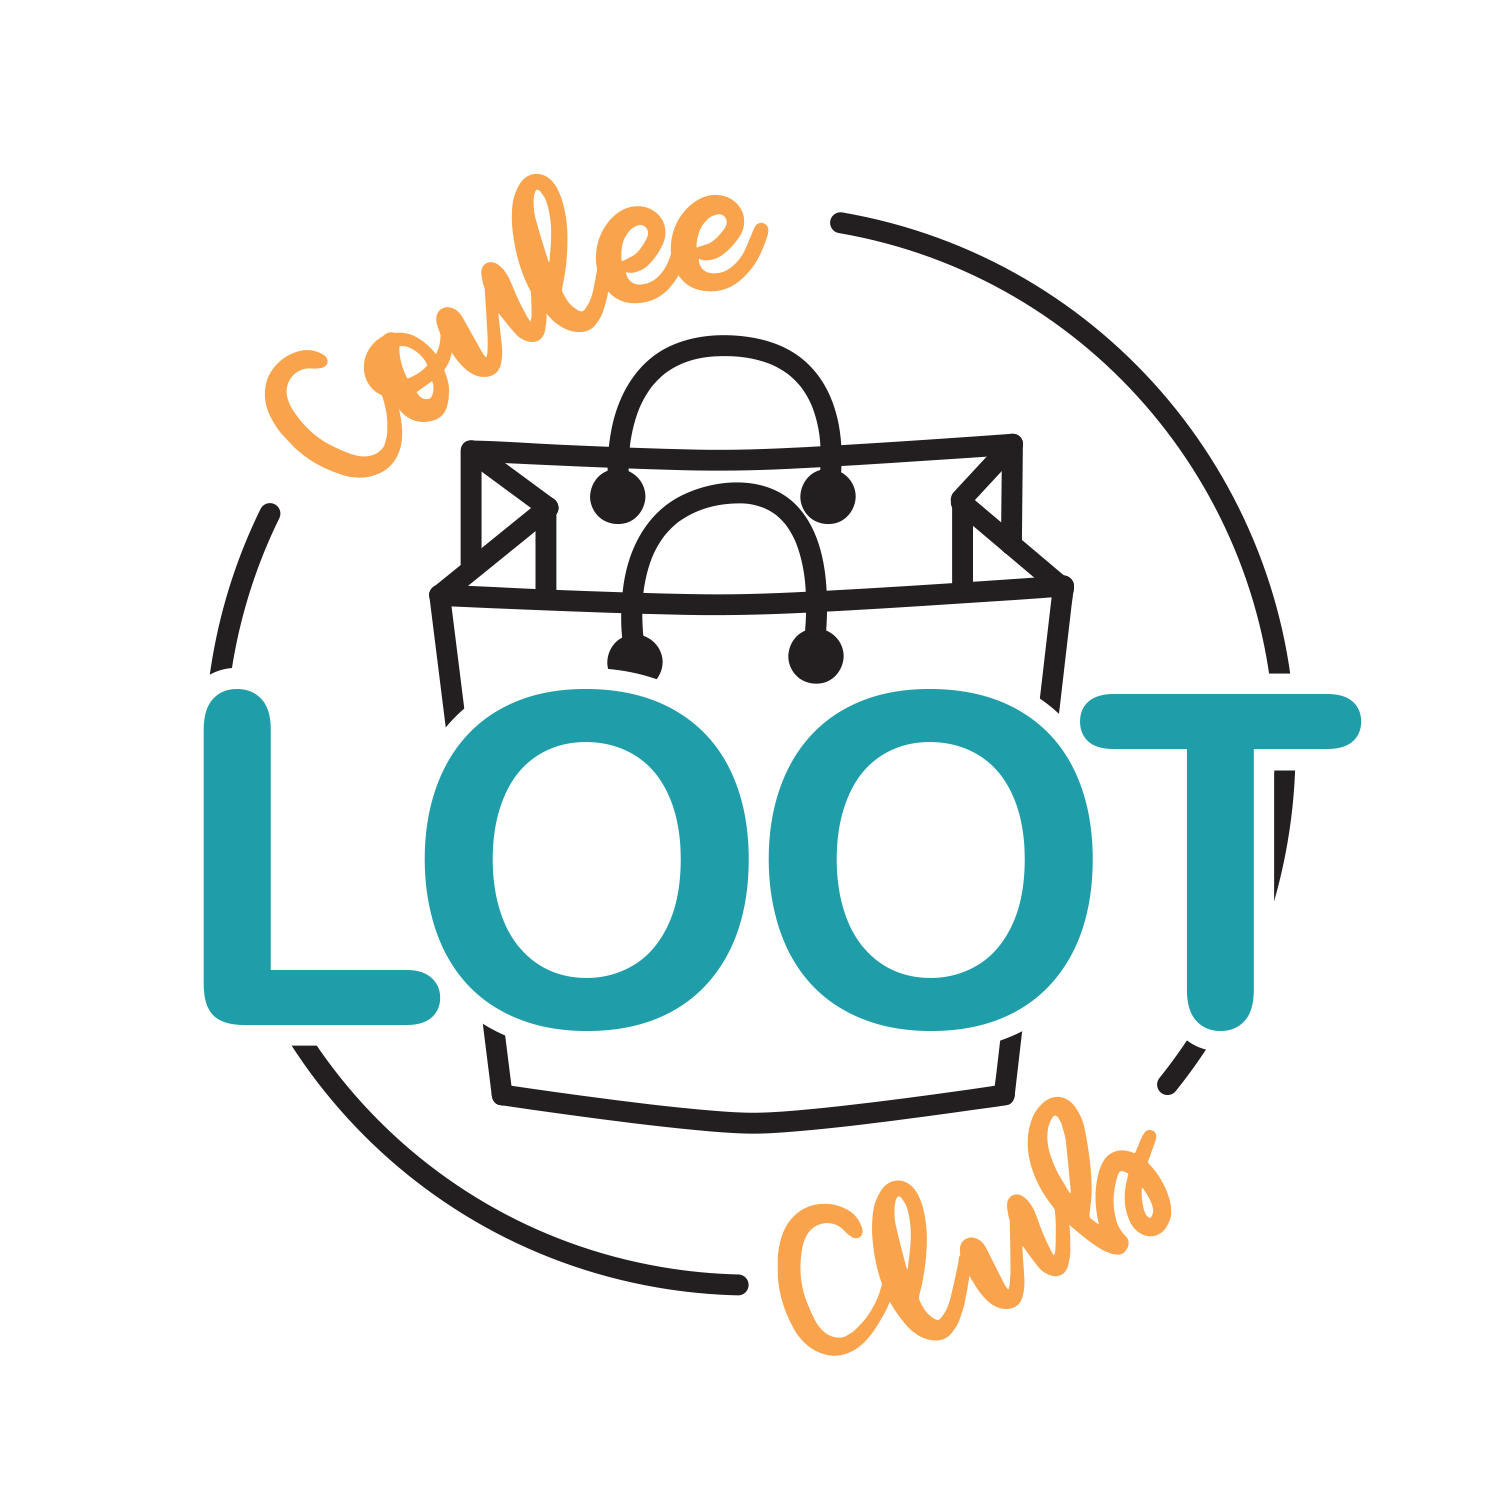 Coulee Loot Club Logo